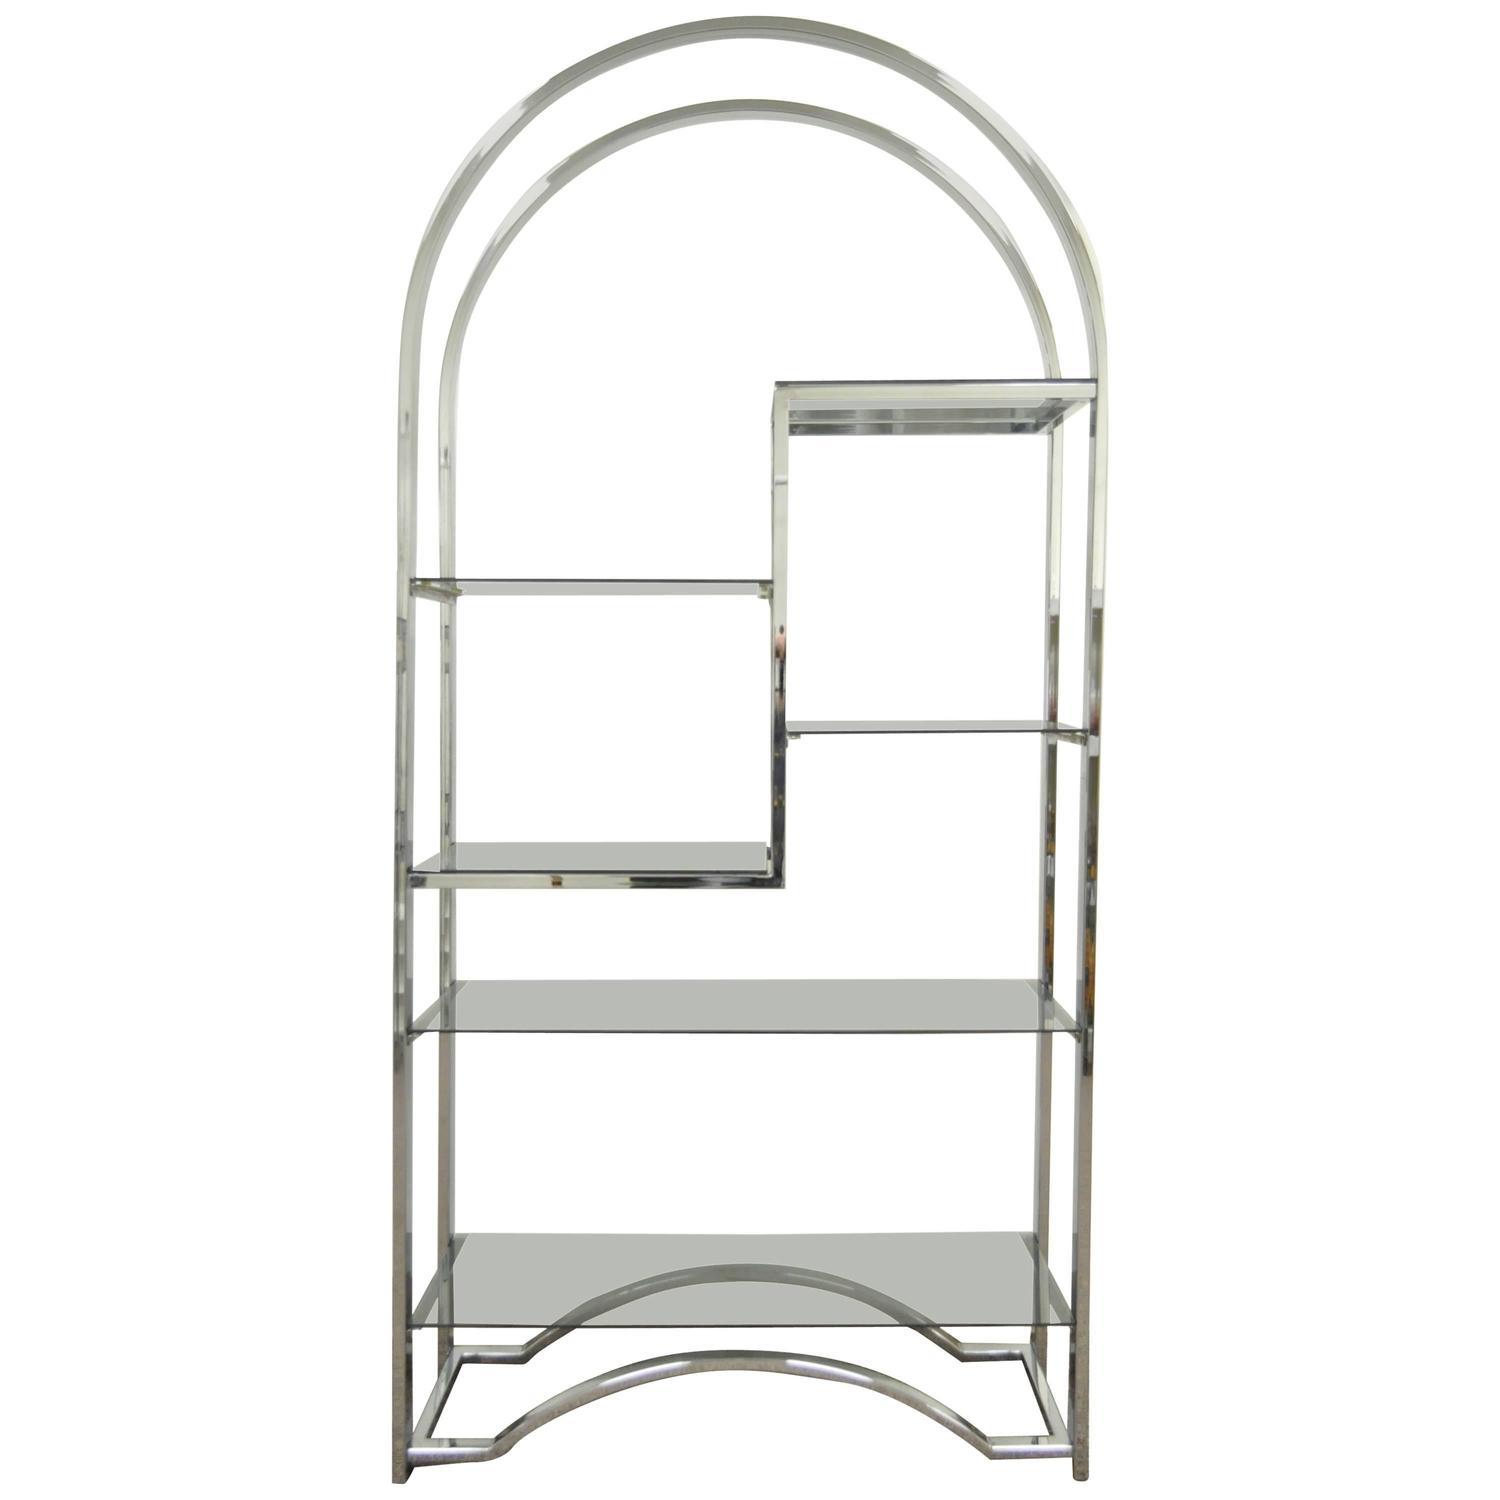 Chrome And Glass Shelving Unit Finest Click To Zoom With Chrome And Glass Shelving Unit Best